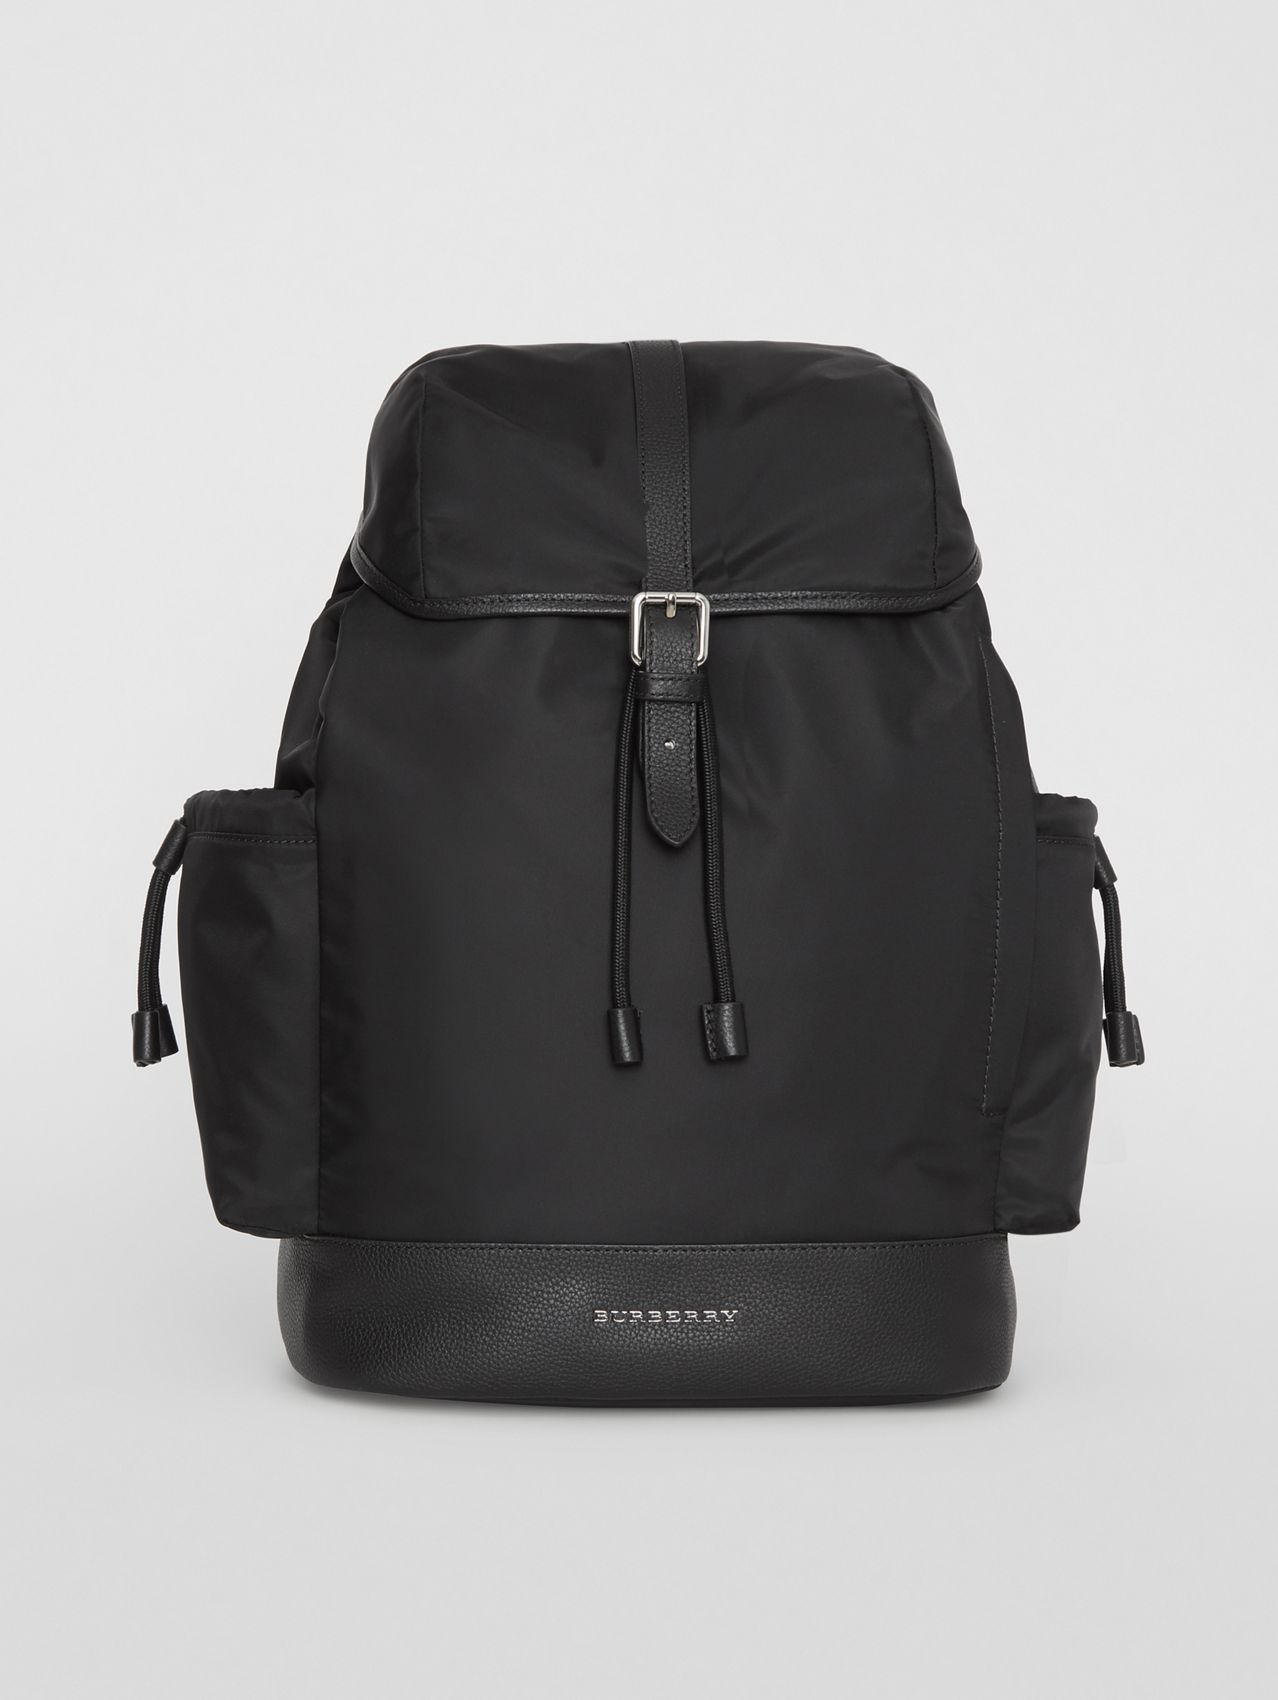 Leather Trim Baby Changing Rucksack in Black